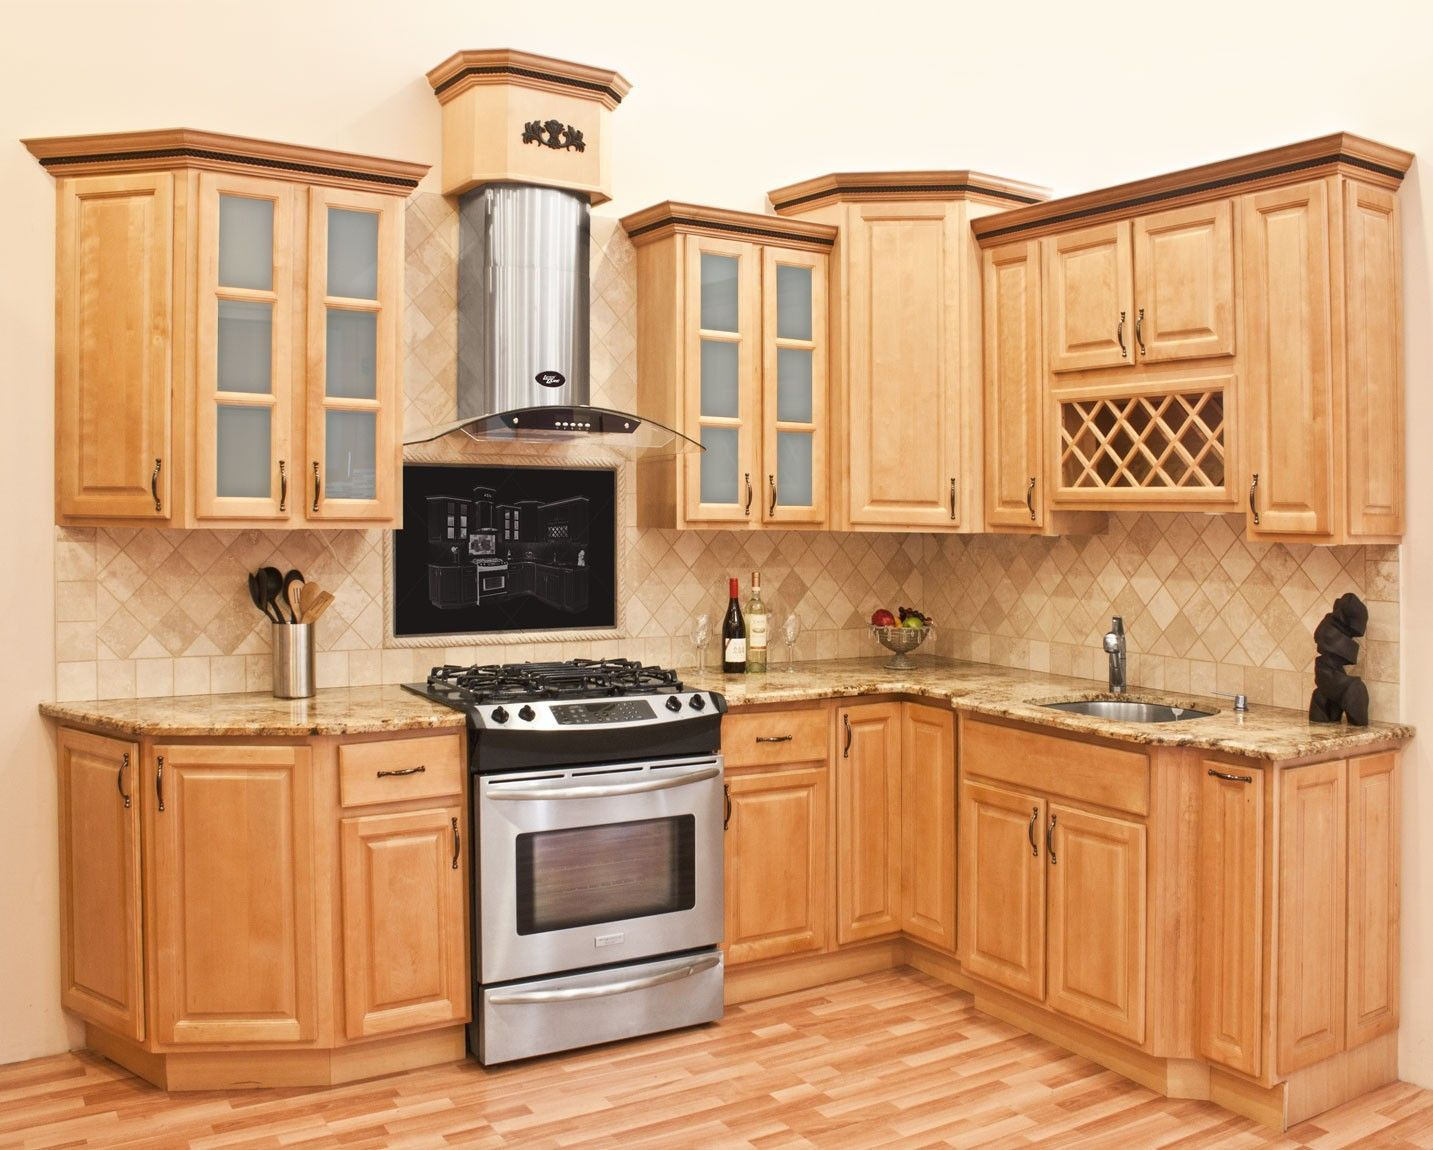 Lesscare Richmond Cabinets Kitchen Cabinets Kitchen